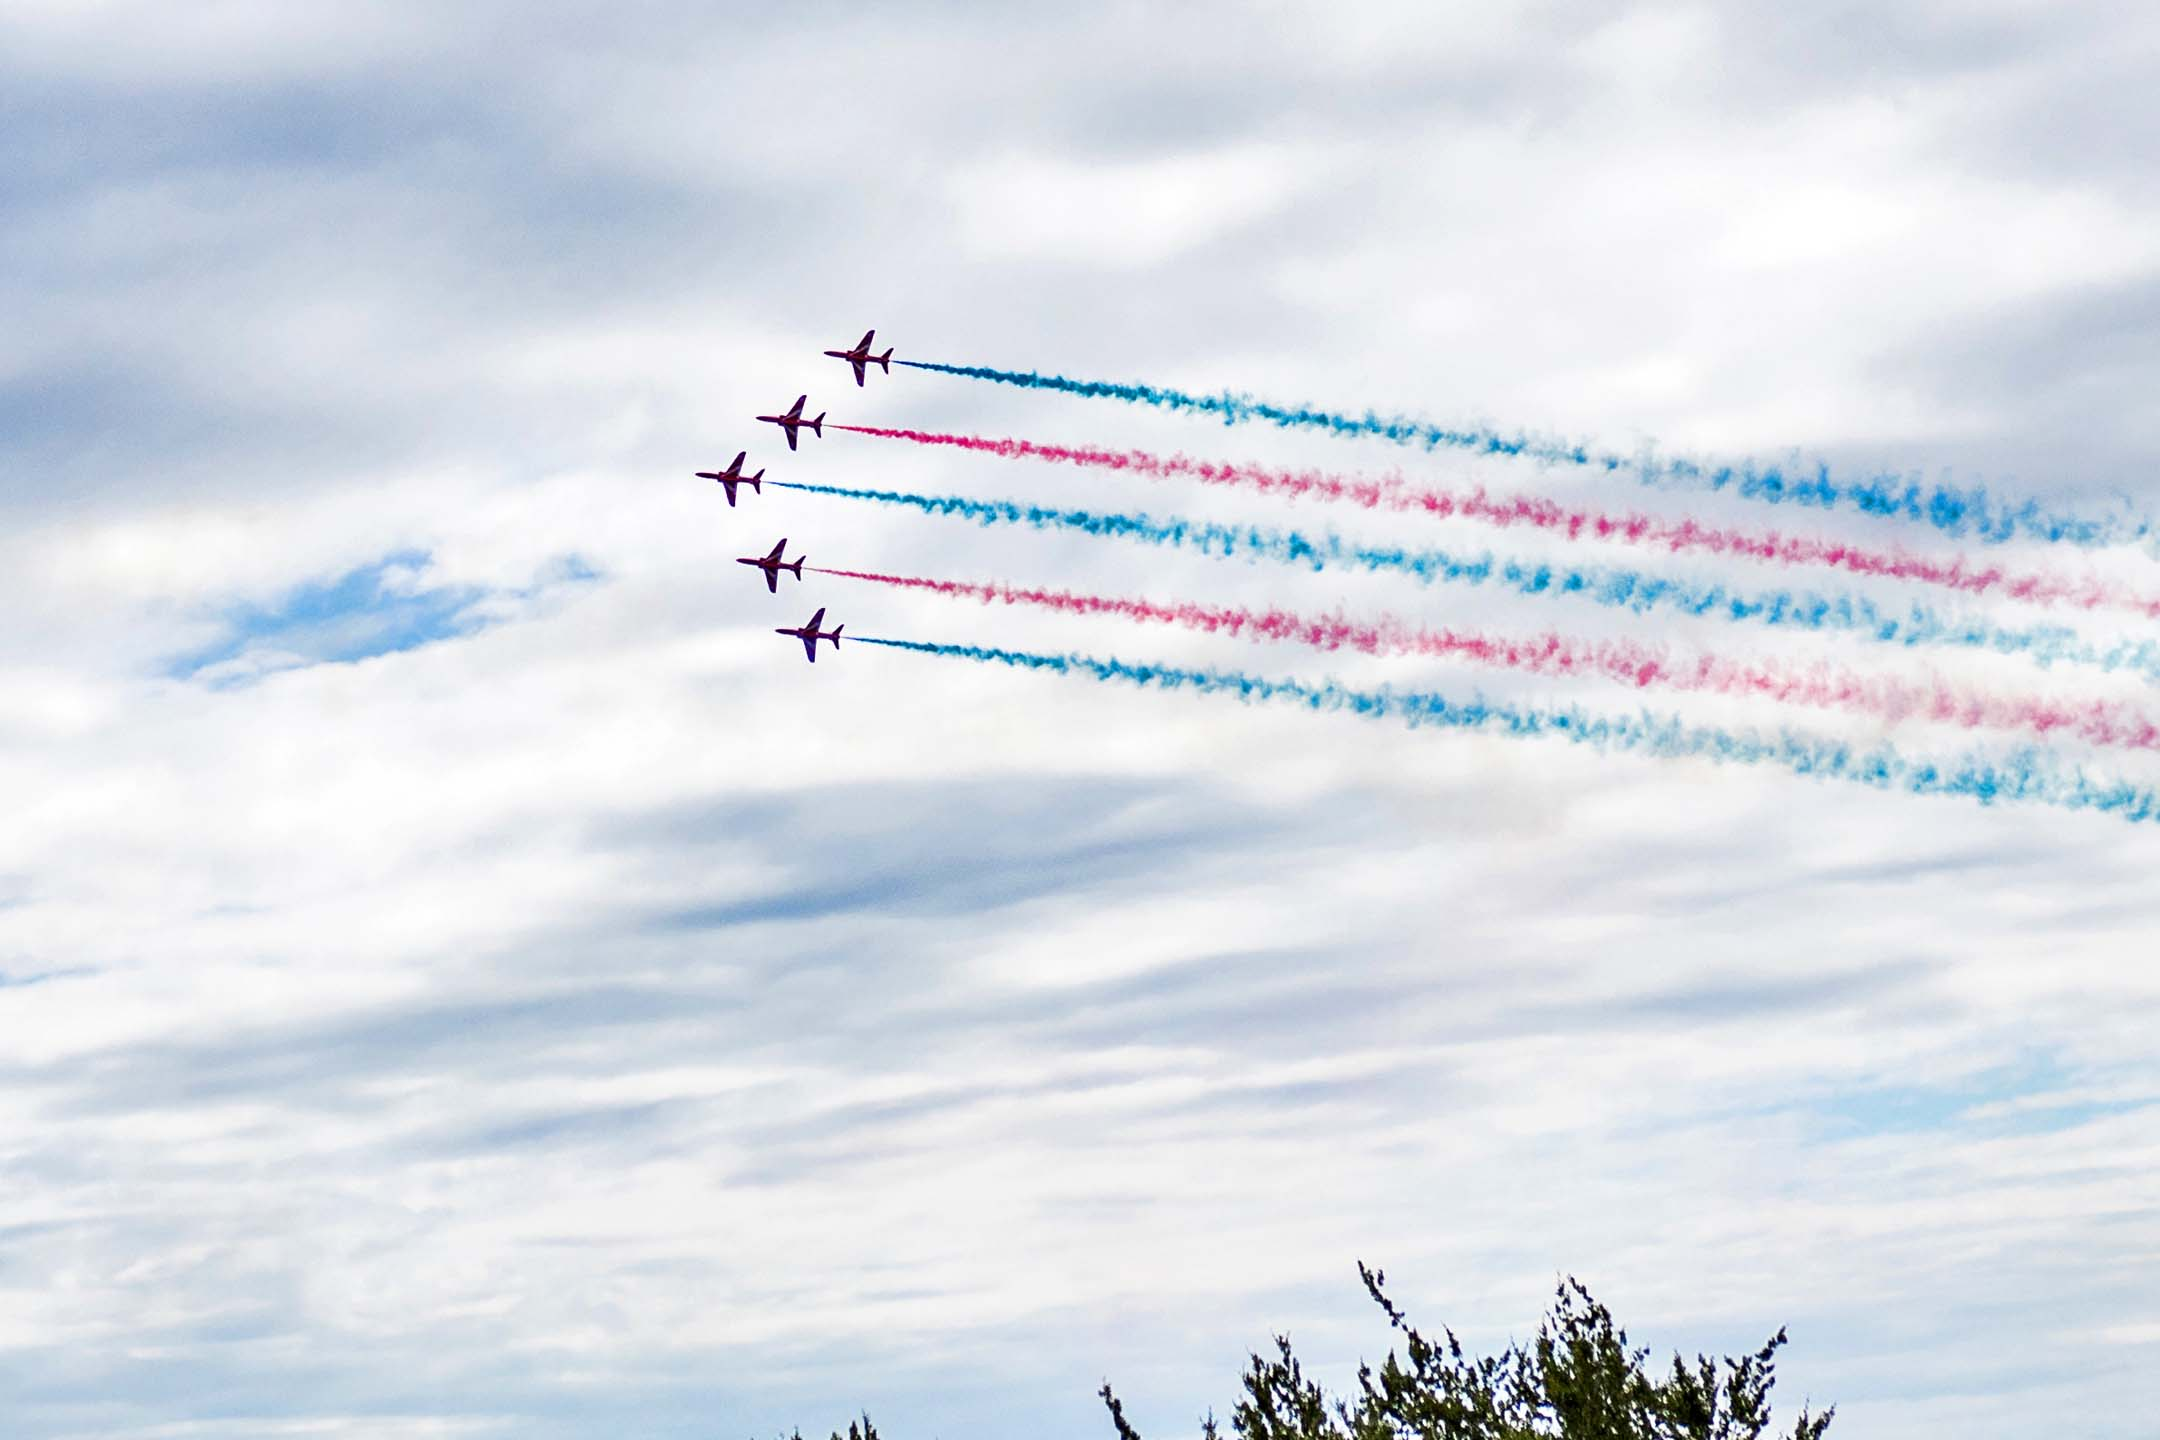 The Red Arrows acrobatic team screams overhead as the cars are marshalled back into their starting positions. Factoring in the huge amount of helicopter traffic, acrobatic displays, and the arrival of RAF Tornadoes, the Goodwood festival is also a bit of an airshow.